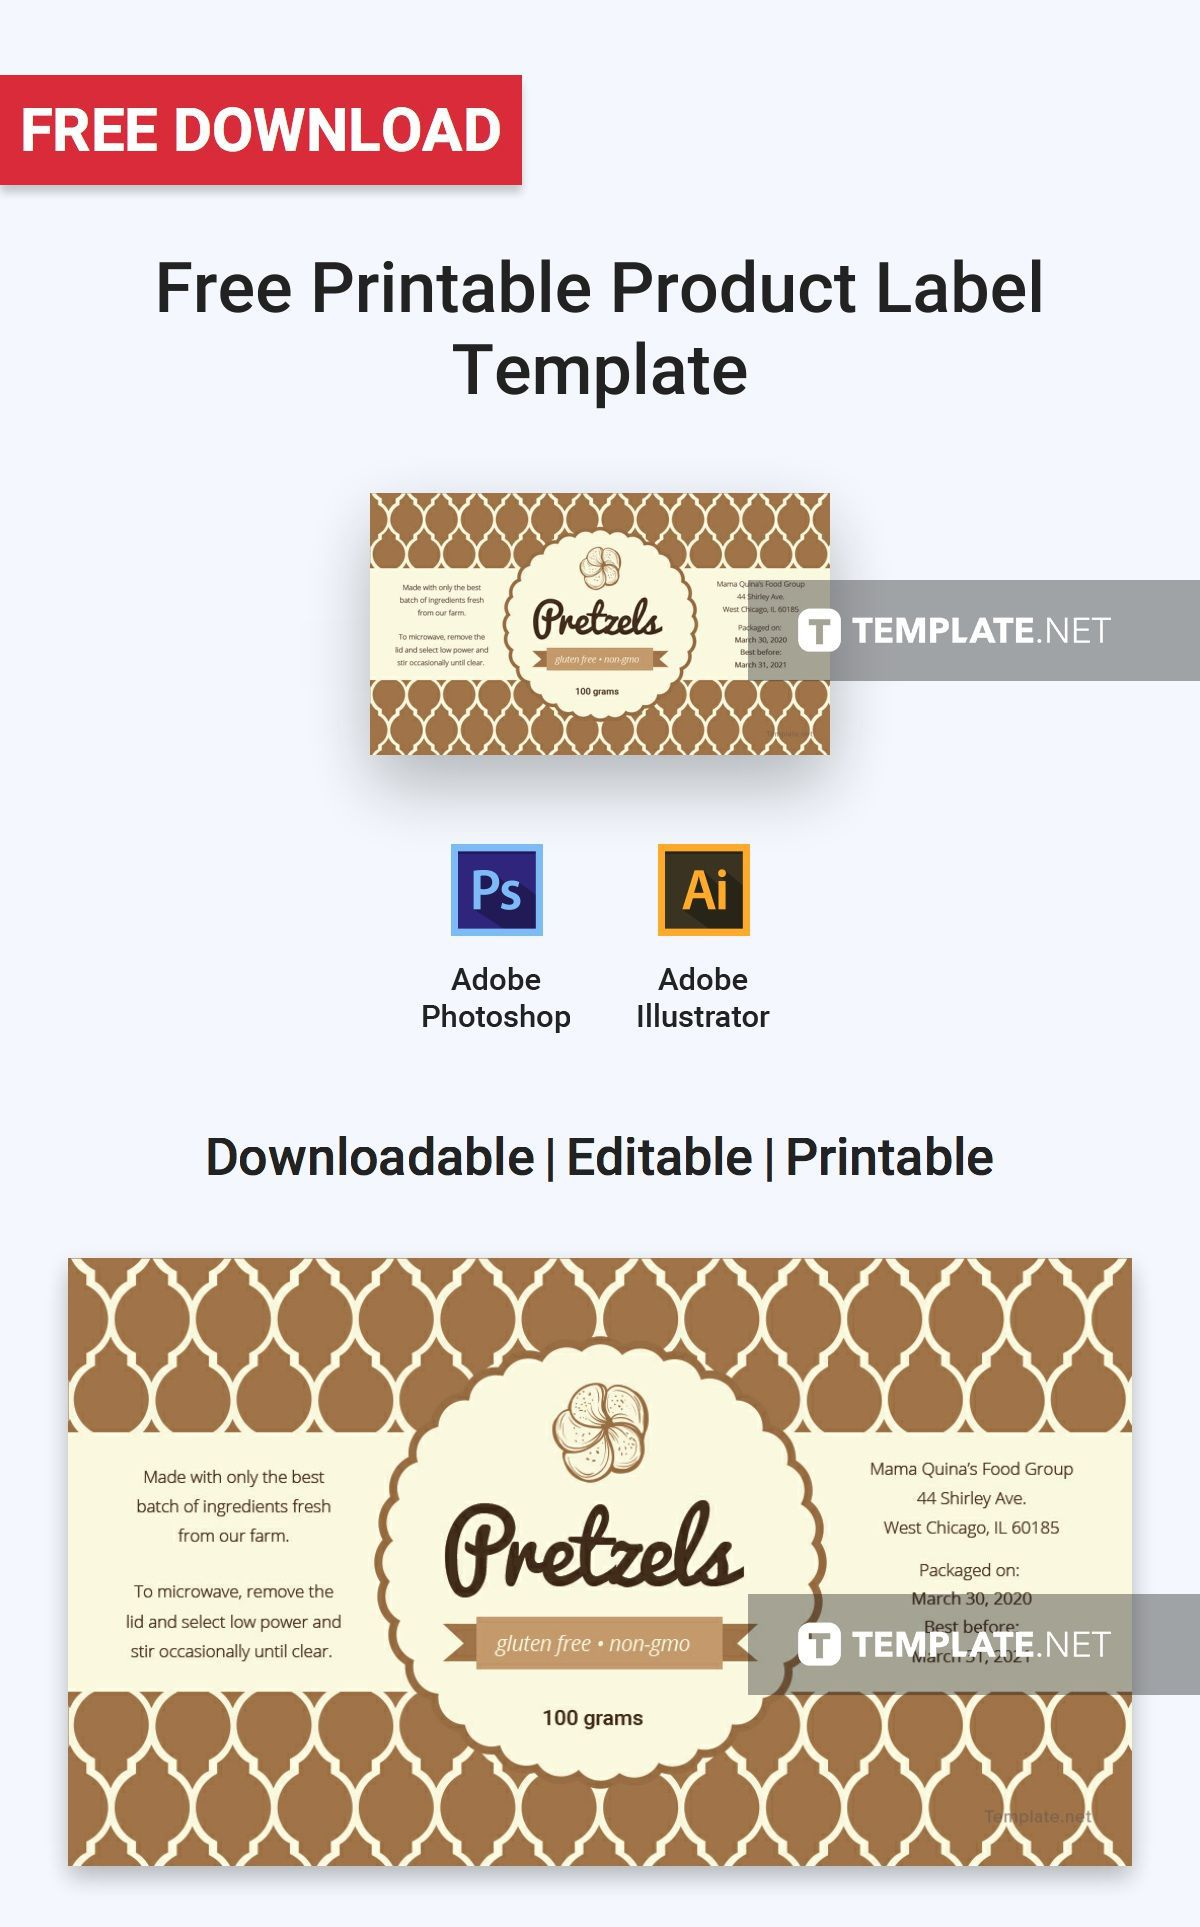 001 Amazing Free Food Label Design Template High Def  Templates DownloadFull